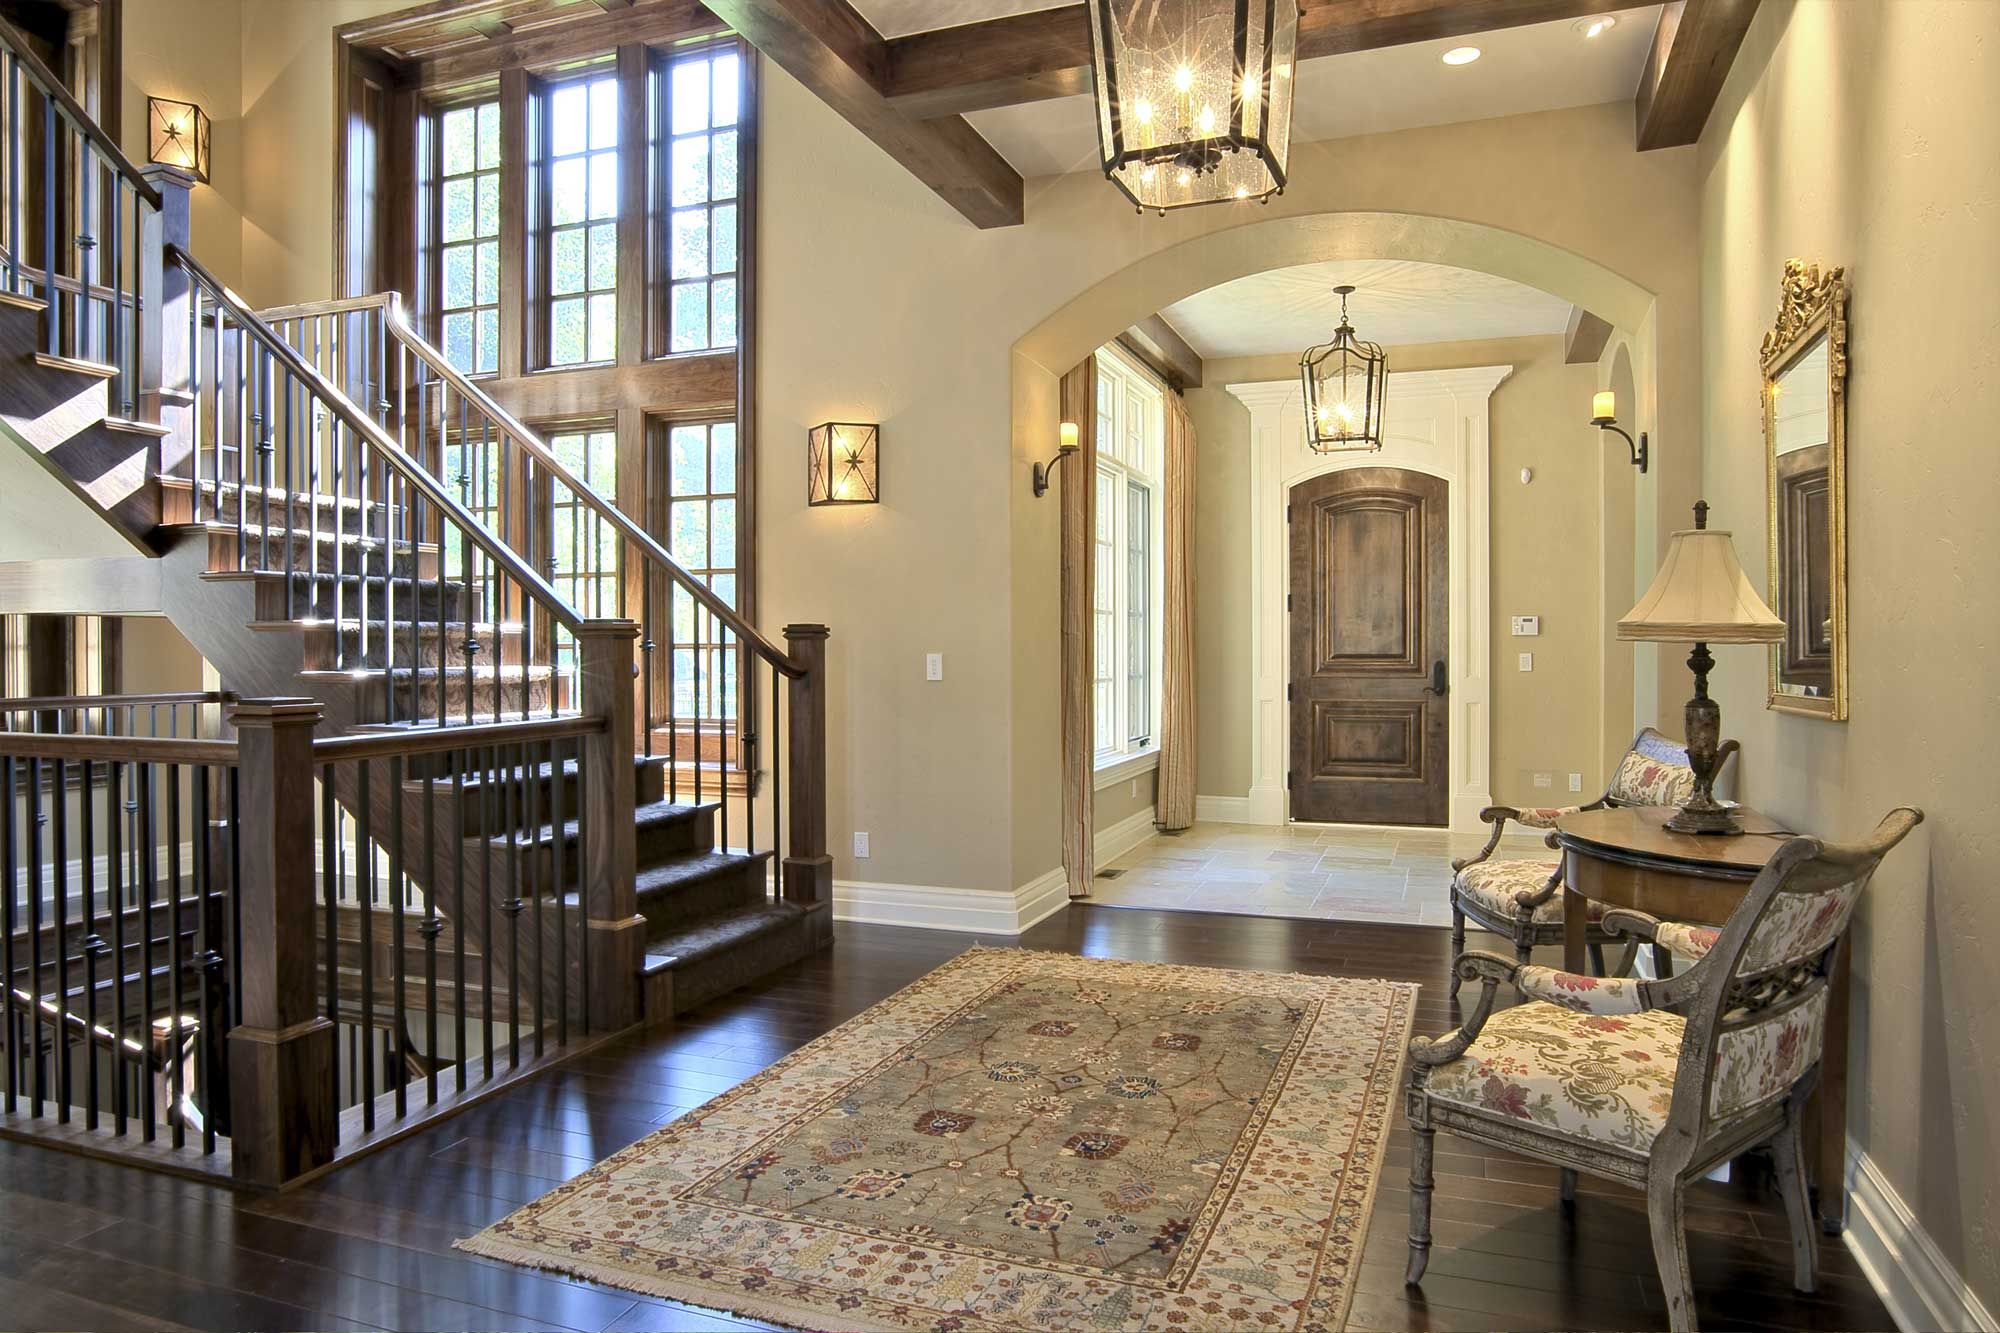 Lovely Foyer Colors And Woods   Greystone Homes, Hoover Alabama · StaircasesFoyer  StaircaseEntry ...